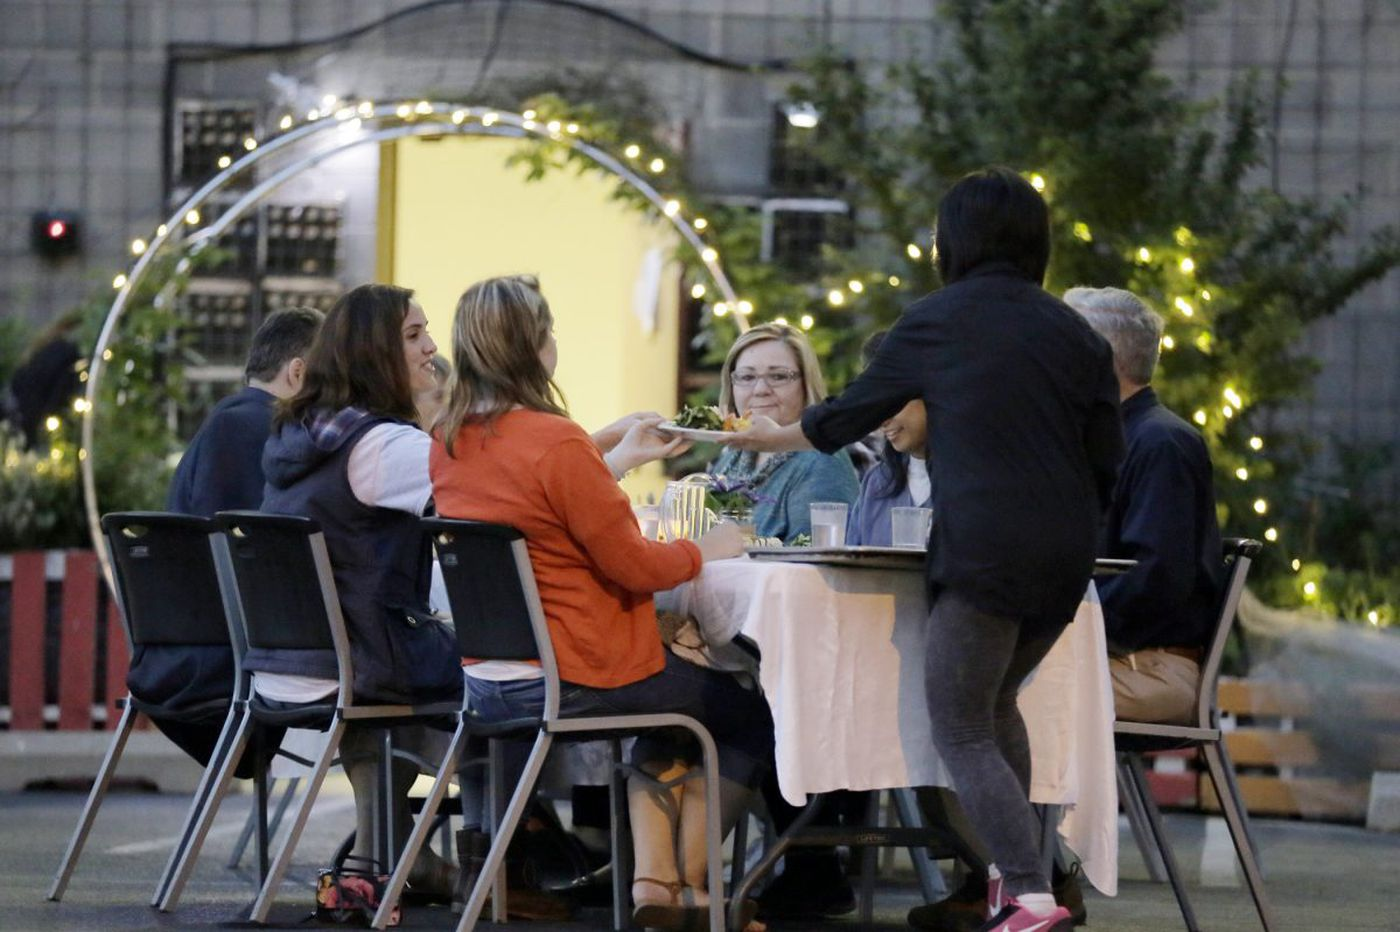 A five-course meal in a parking lot, a lesson in growing food where you live